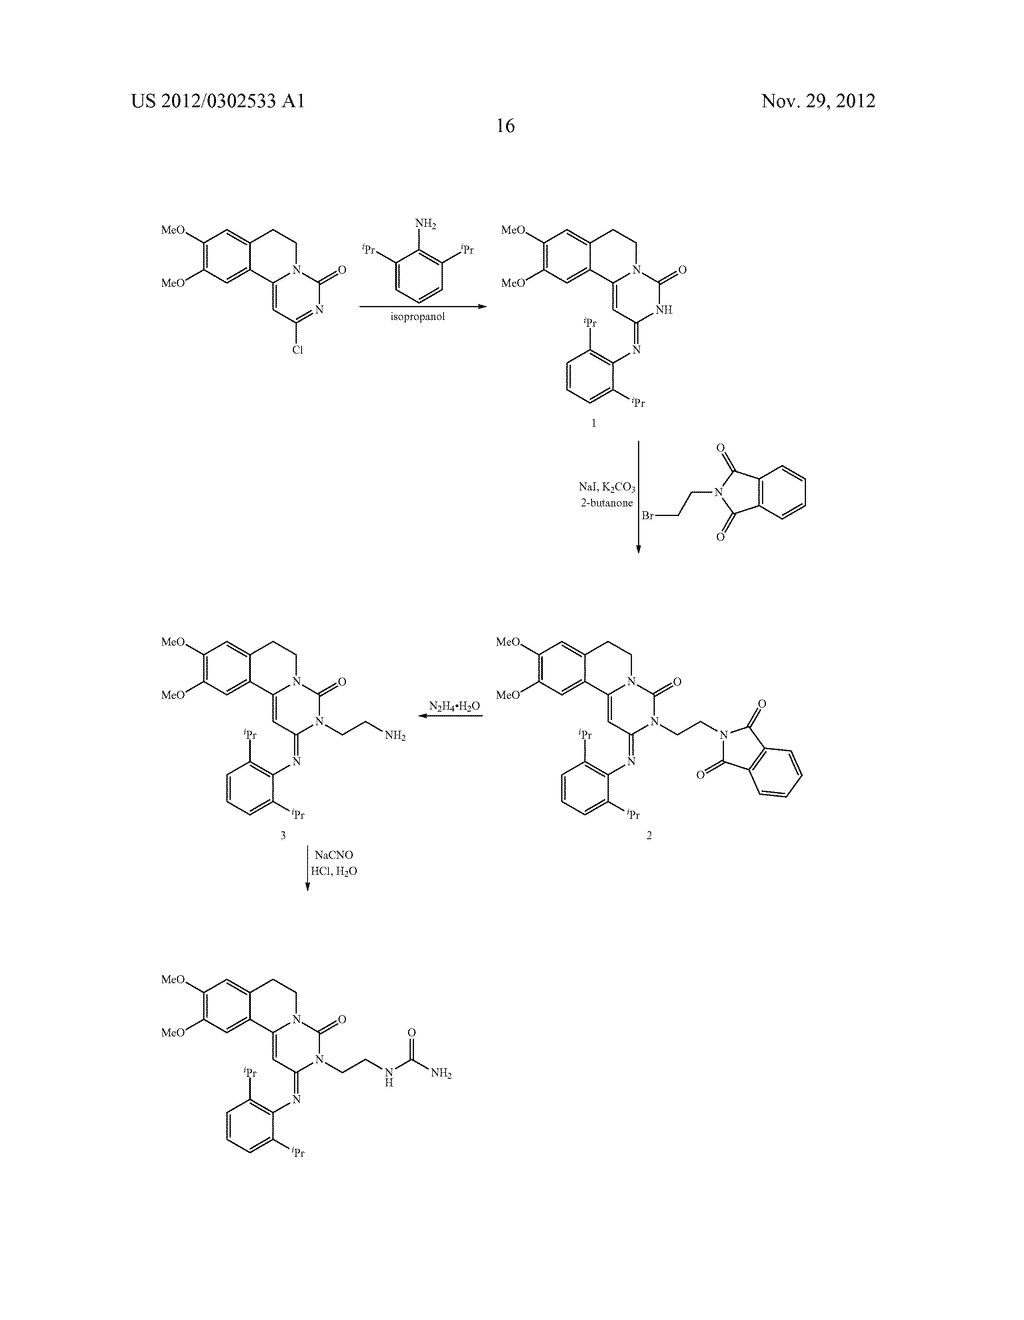 DERIVATIVES OF PYRIMIDO [6,1-A] ISOQUINOLIN-4-ONE - diagram, schematic, and image 22